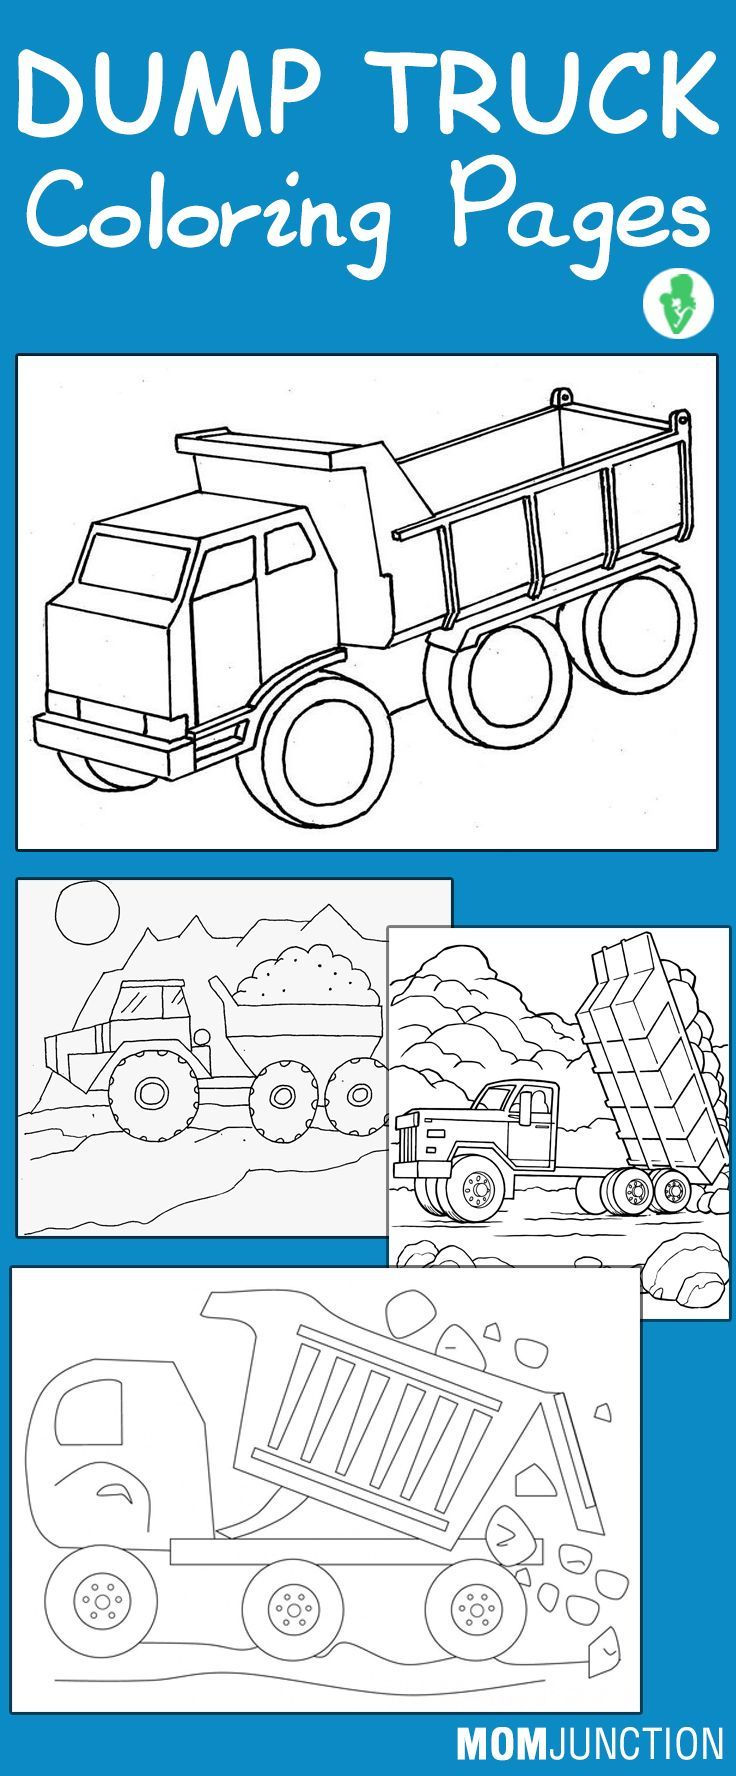 get 20 truck coloring pages ideas on pinterest without signing up